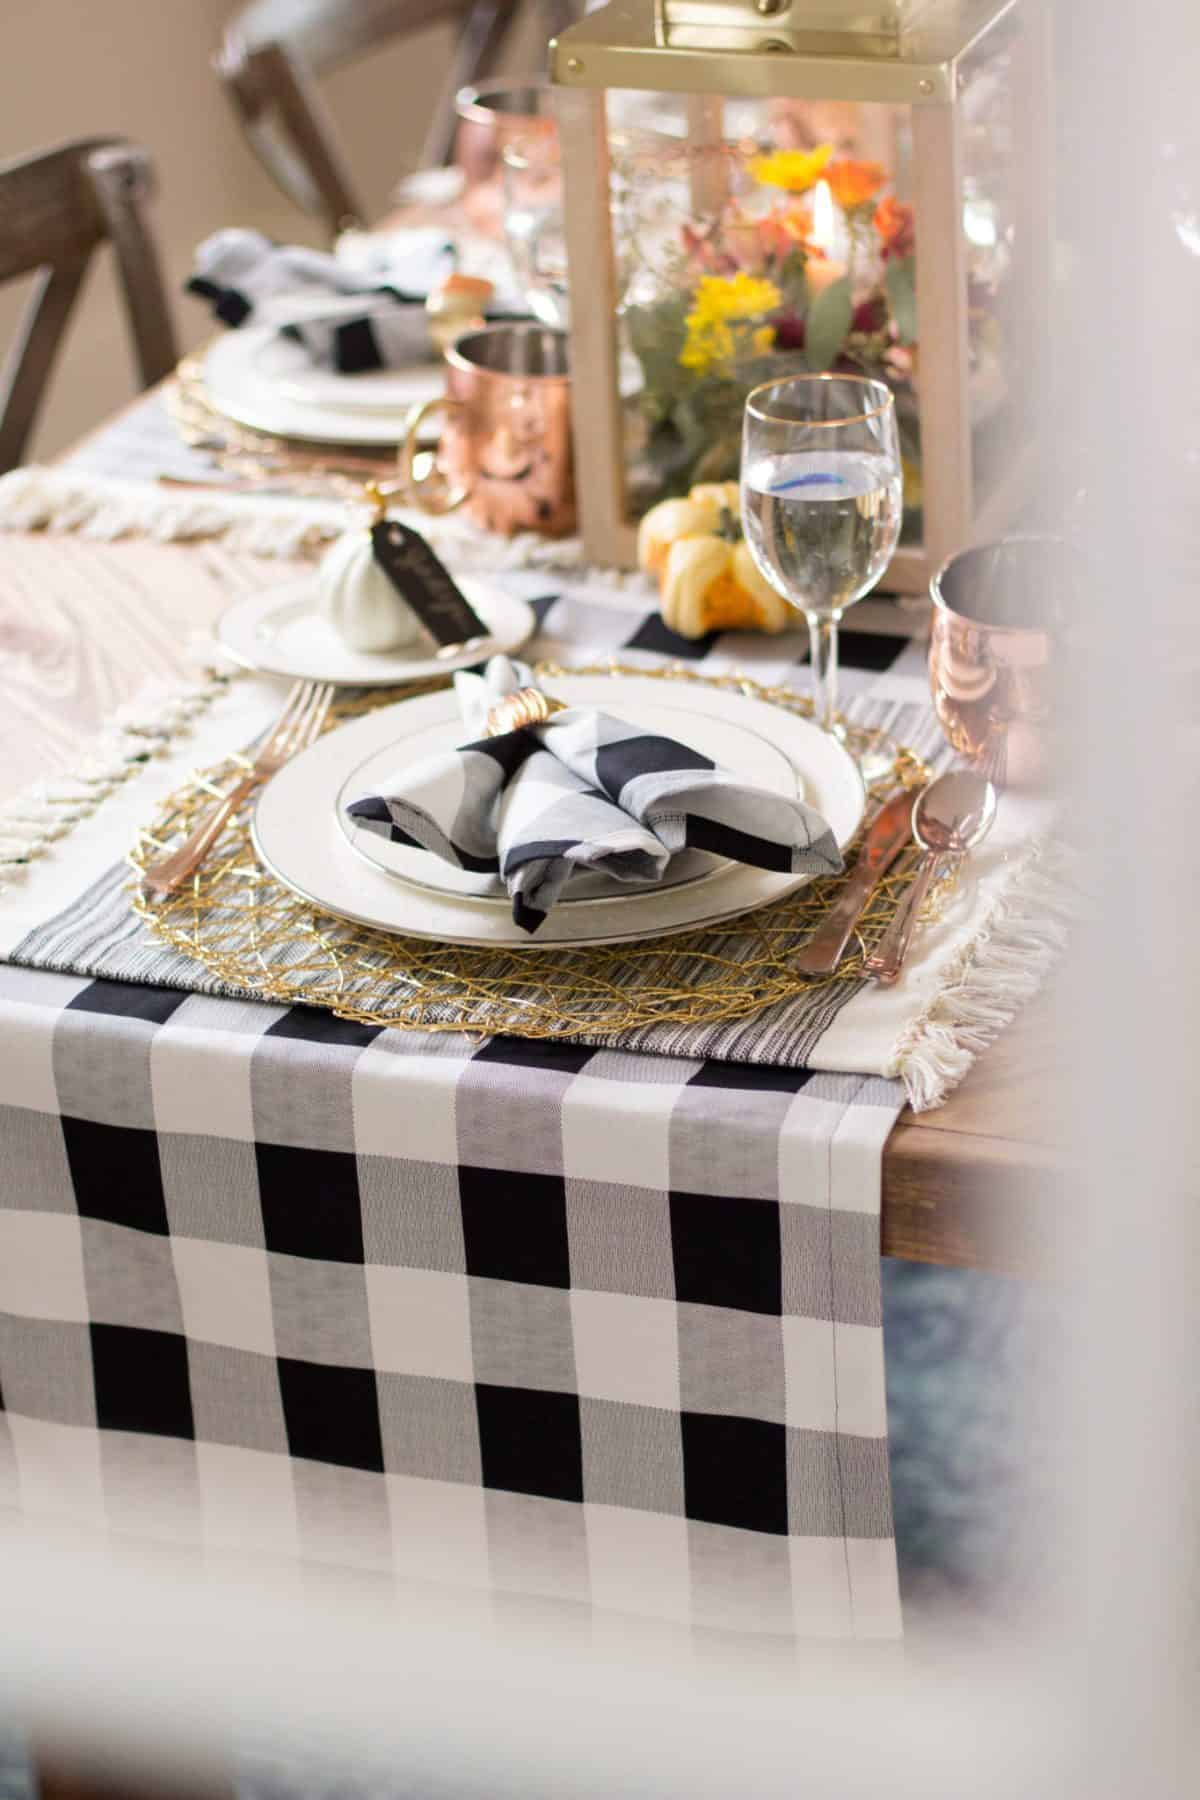 Matching DIY tabler runner and napkins